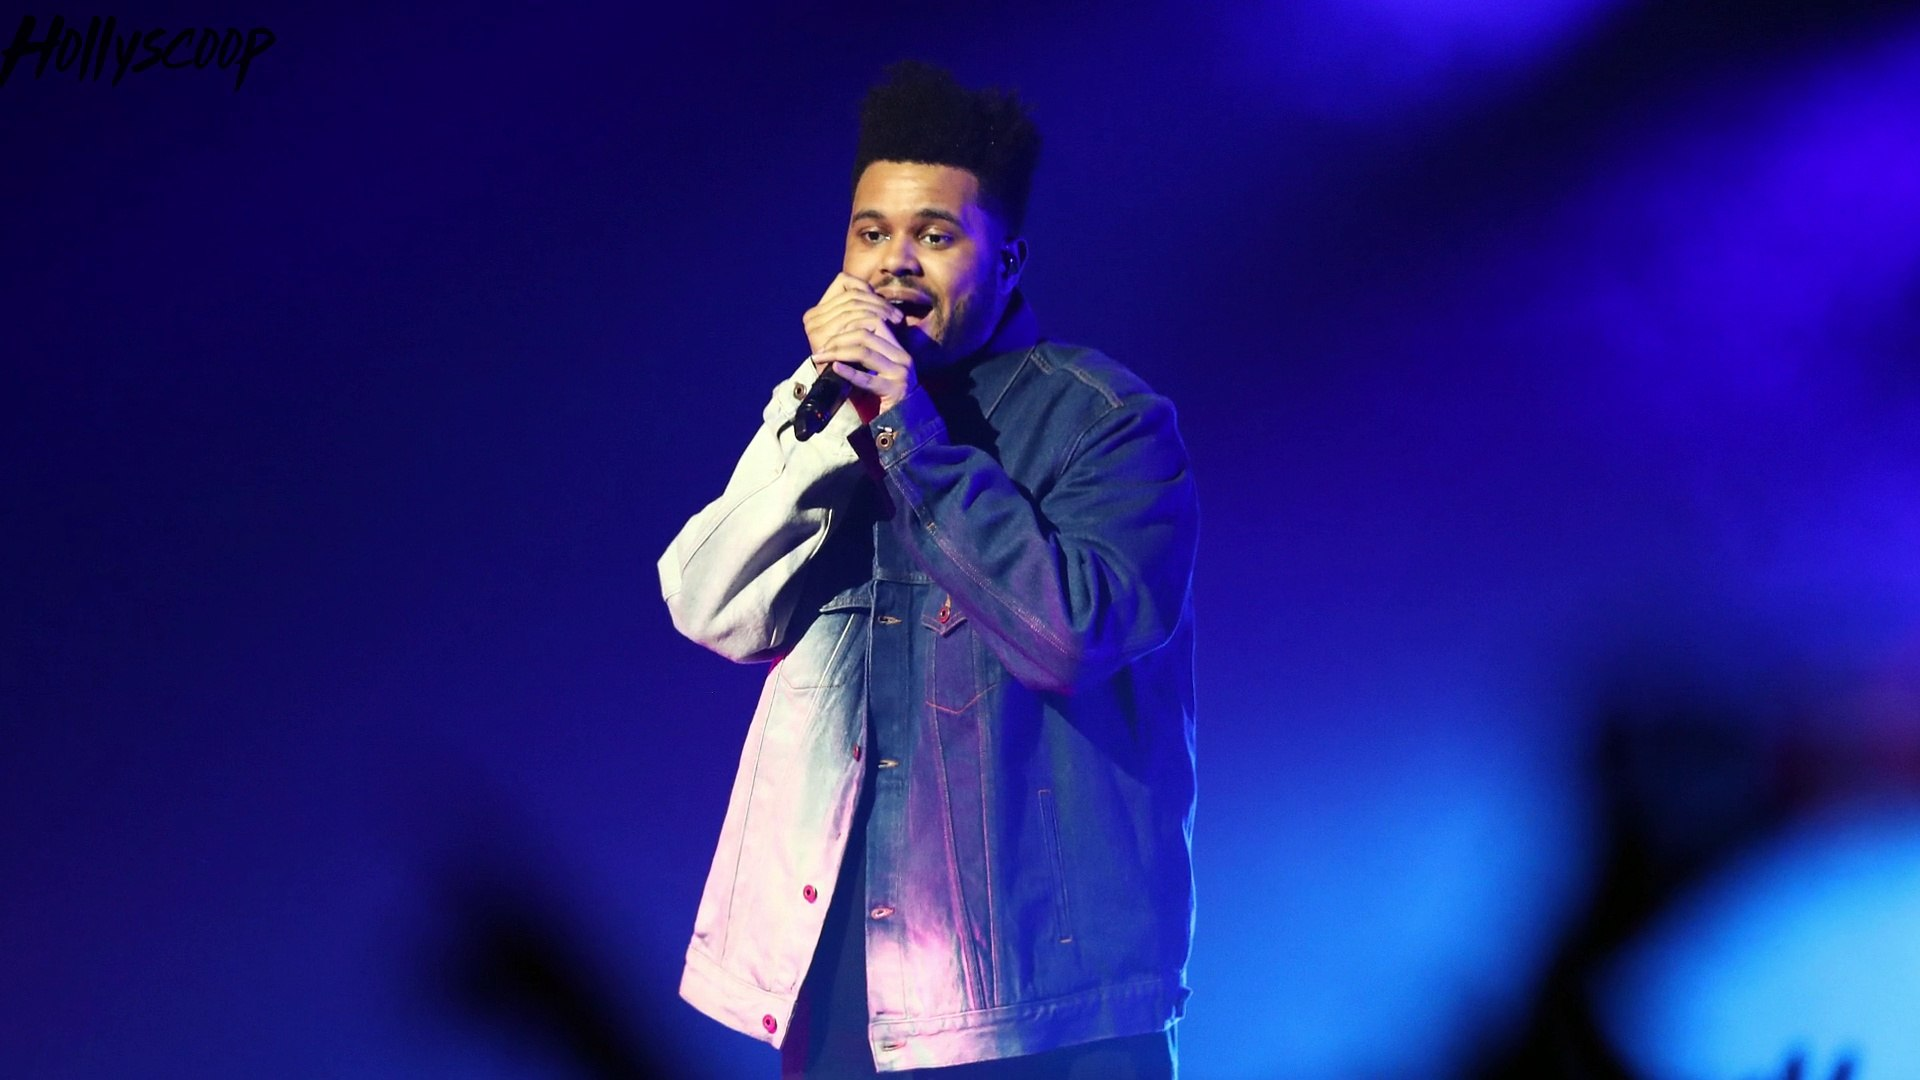 The Weeknds New Song 'My Dear Melancholy' is 100% About Selena Gomez!: Here's Why…